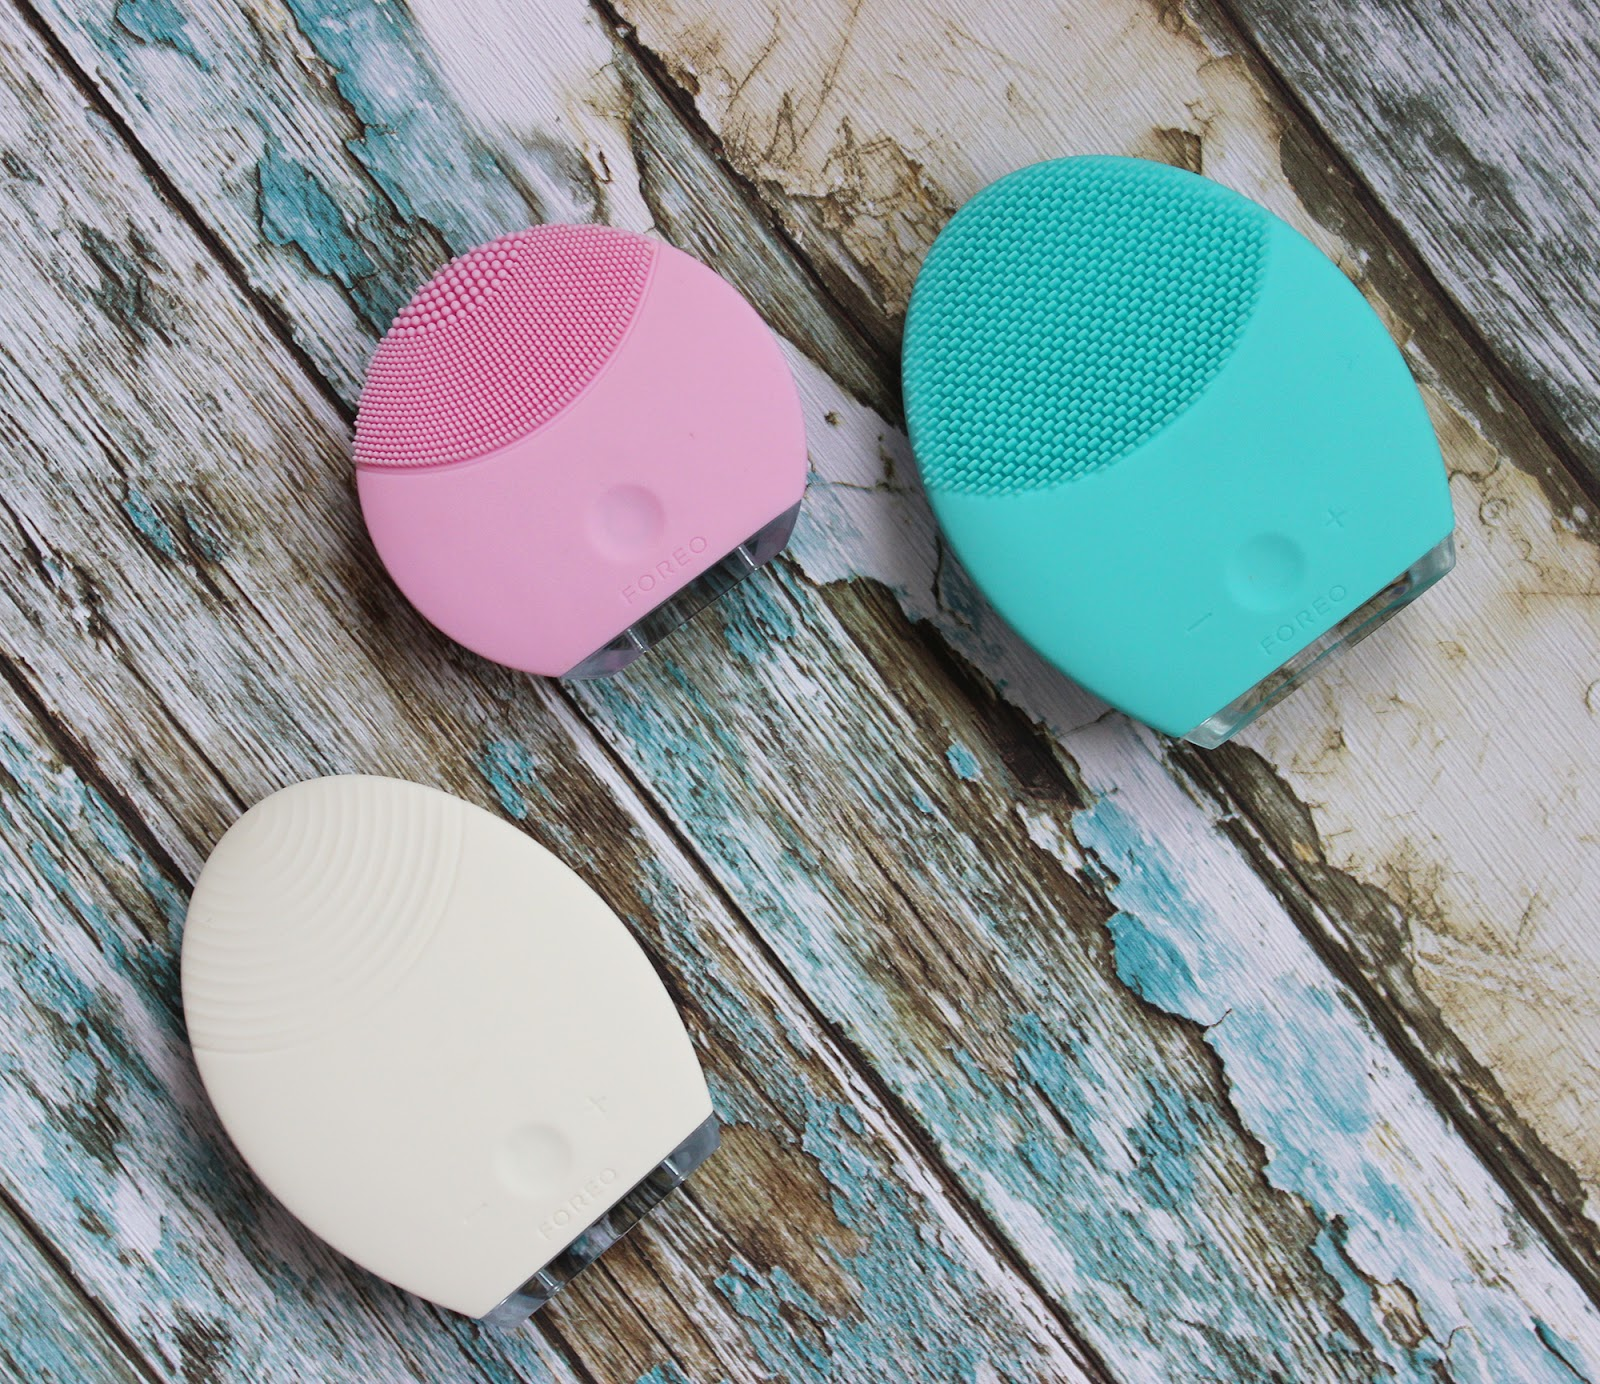 FOREO Luna 2 cleansing device review